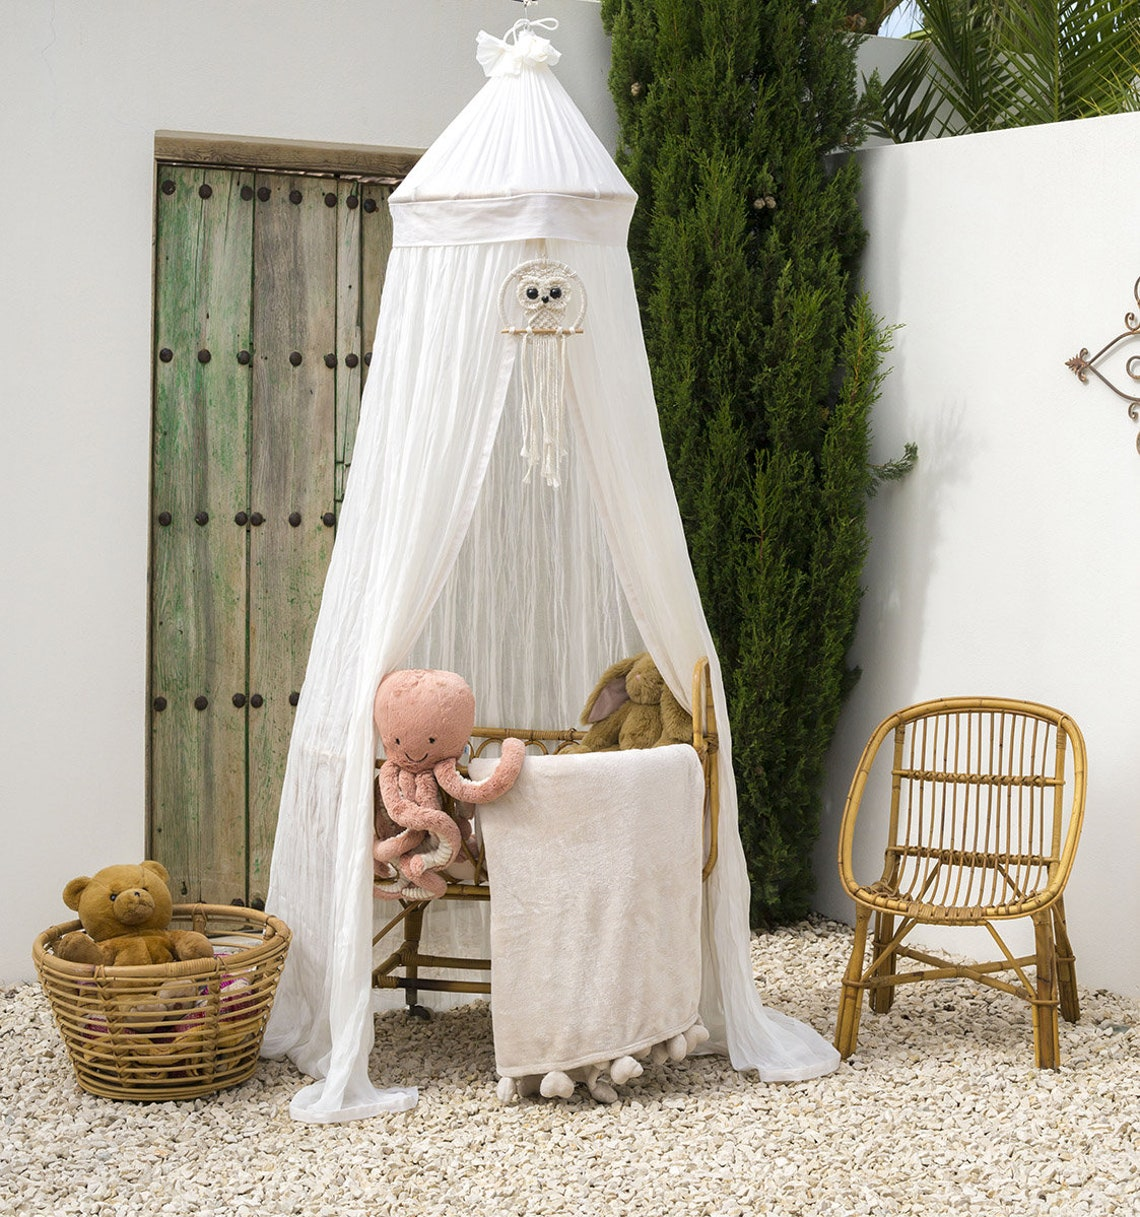 The Anisa Luxury Baby Bed Canopy | 100% Organic Cotton and Rattan Frame | Handmade in Bali | Comes with a Balinese Owl | Boho Baby Room